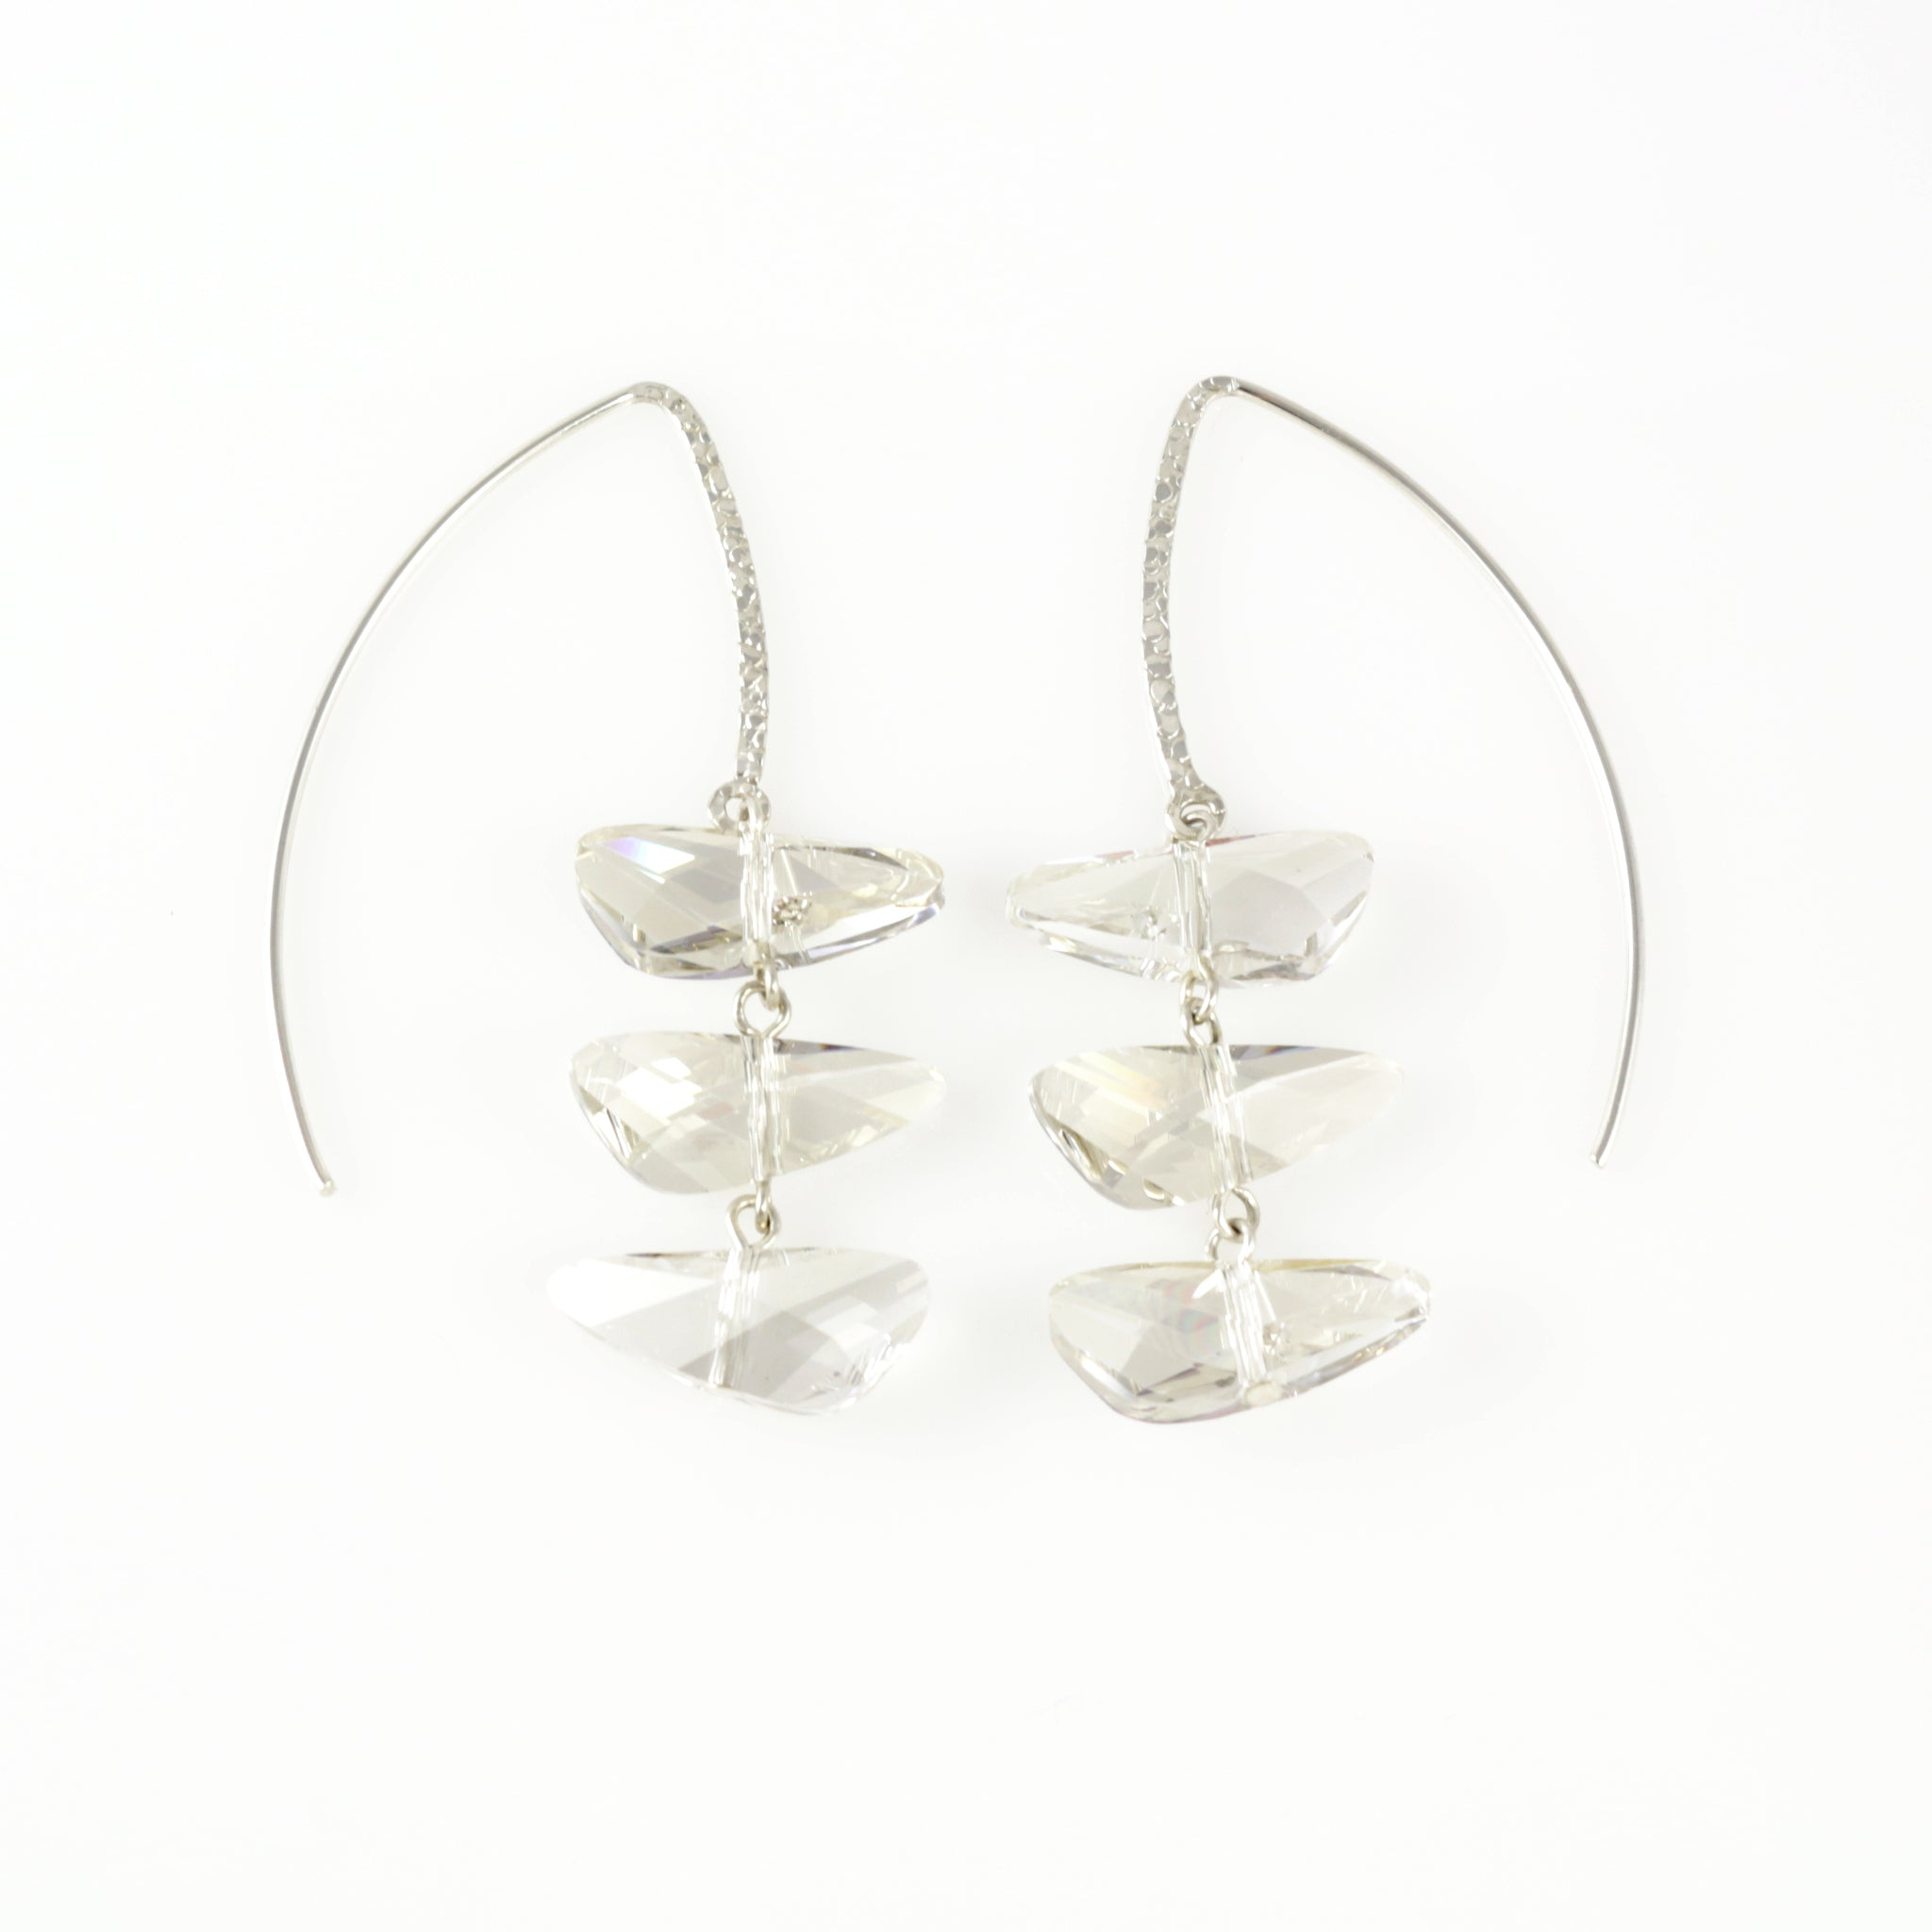 Reflections Earrings in Silver Shade